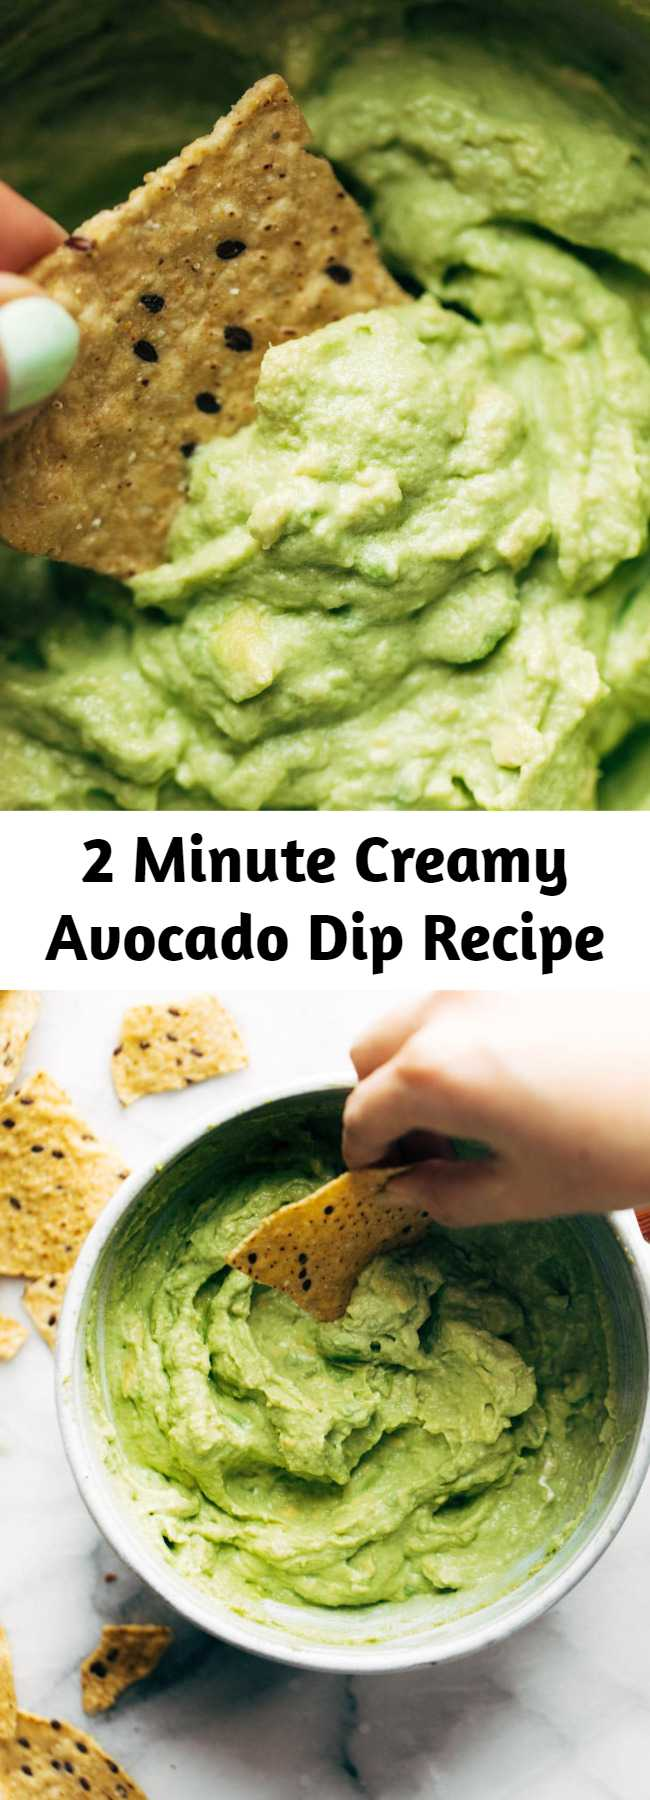 2 Minute Creamy Avocado Dip Recipe - Creamy Avocado Dip that comes together with less than five ingredients in two minutes flat! This is the BEST easy, healthy snack. Also a great spread for tacos. #dip #avocado #avocadodip #cleaneating